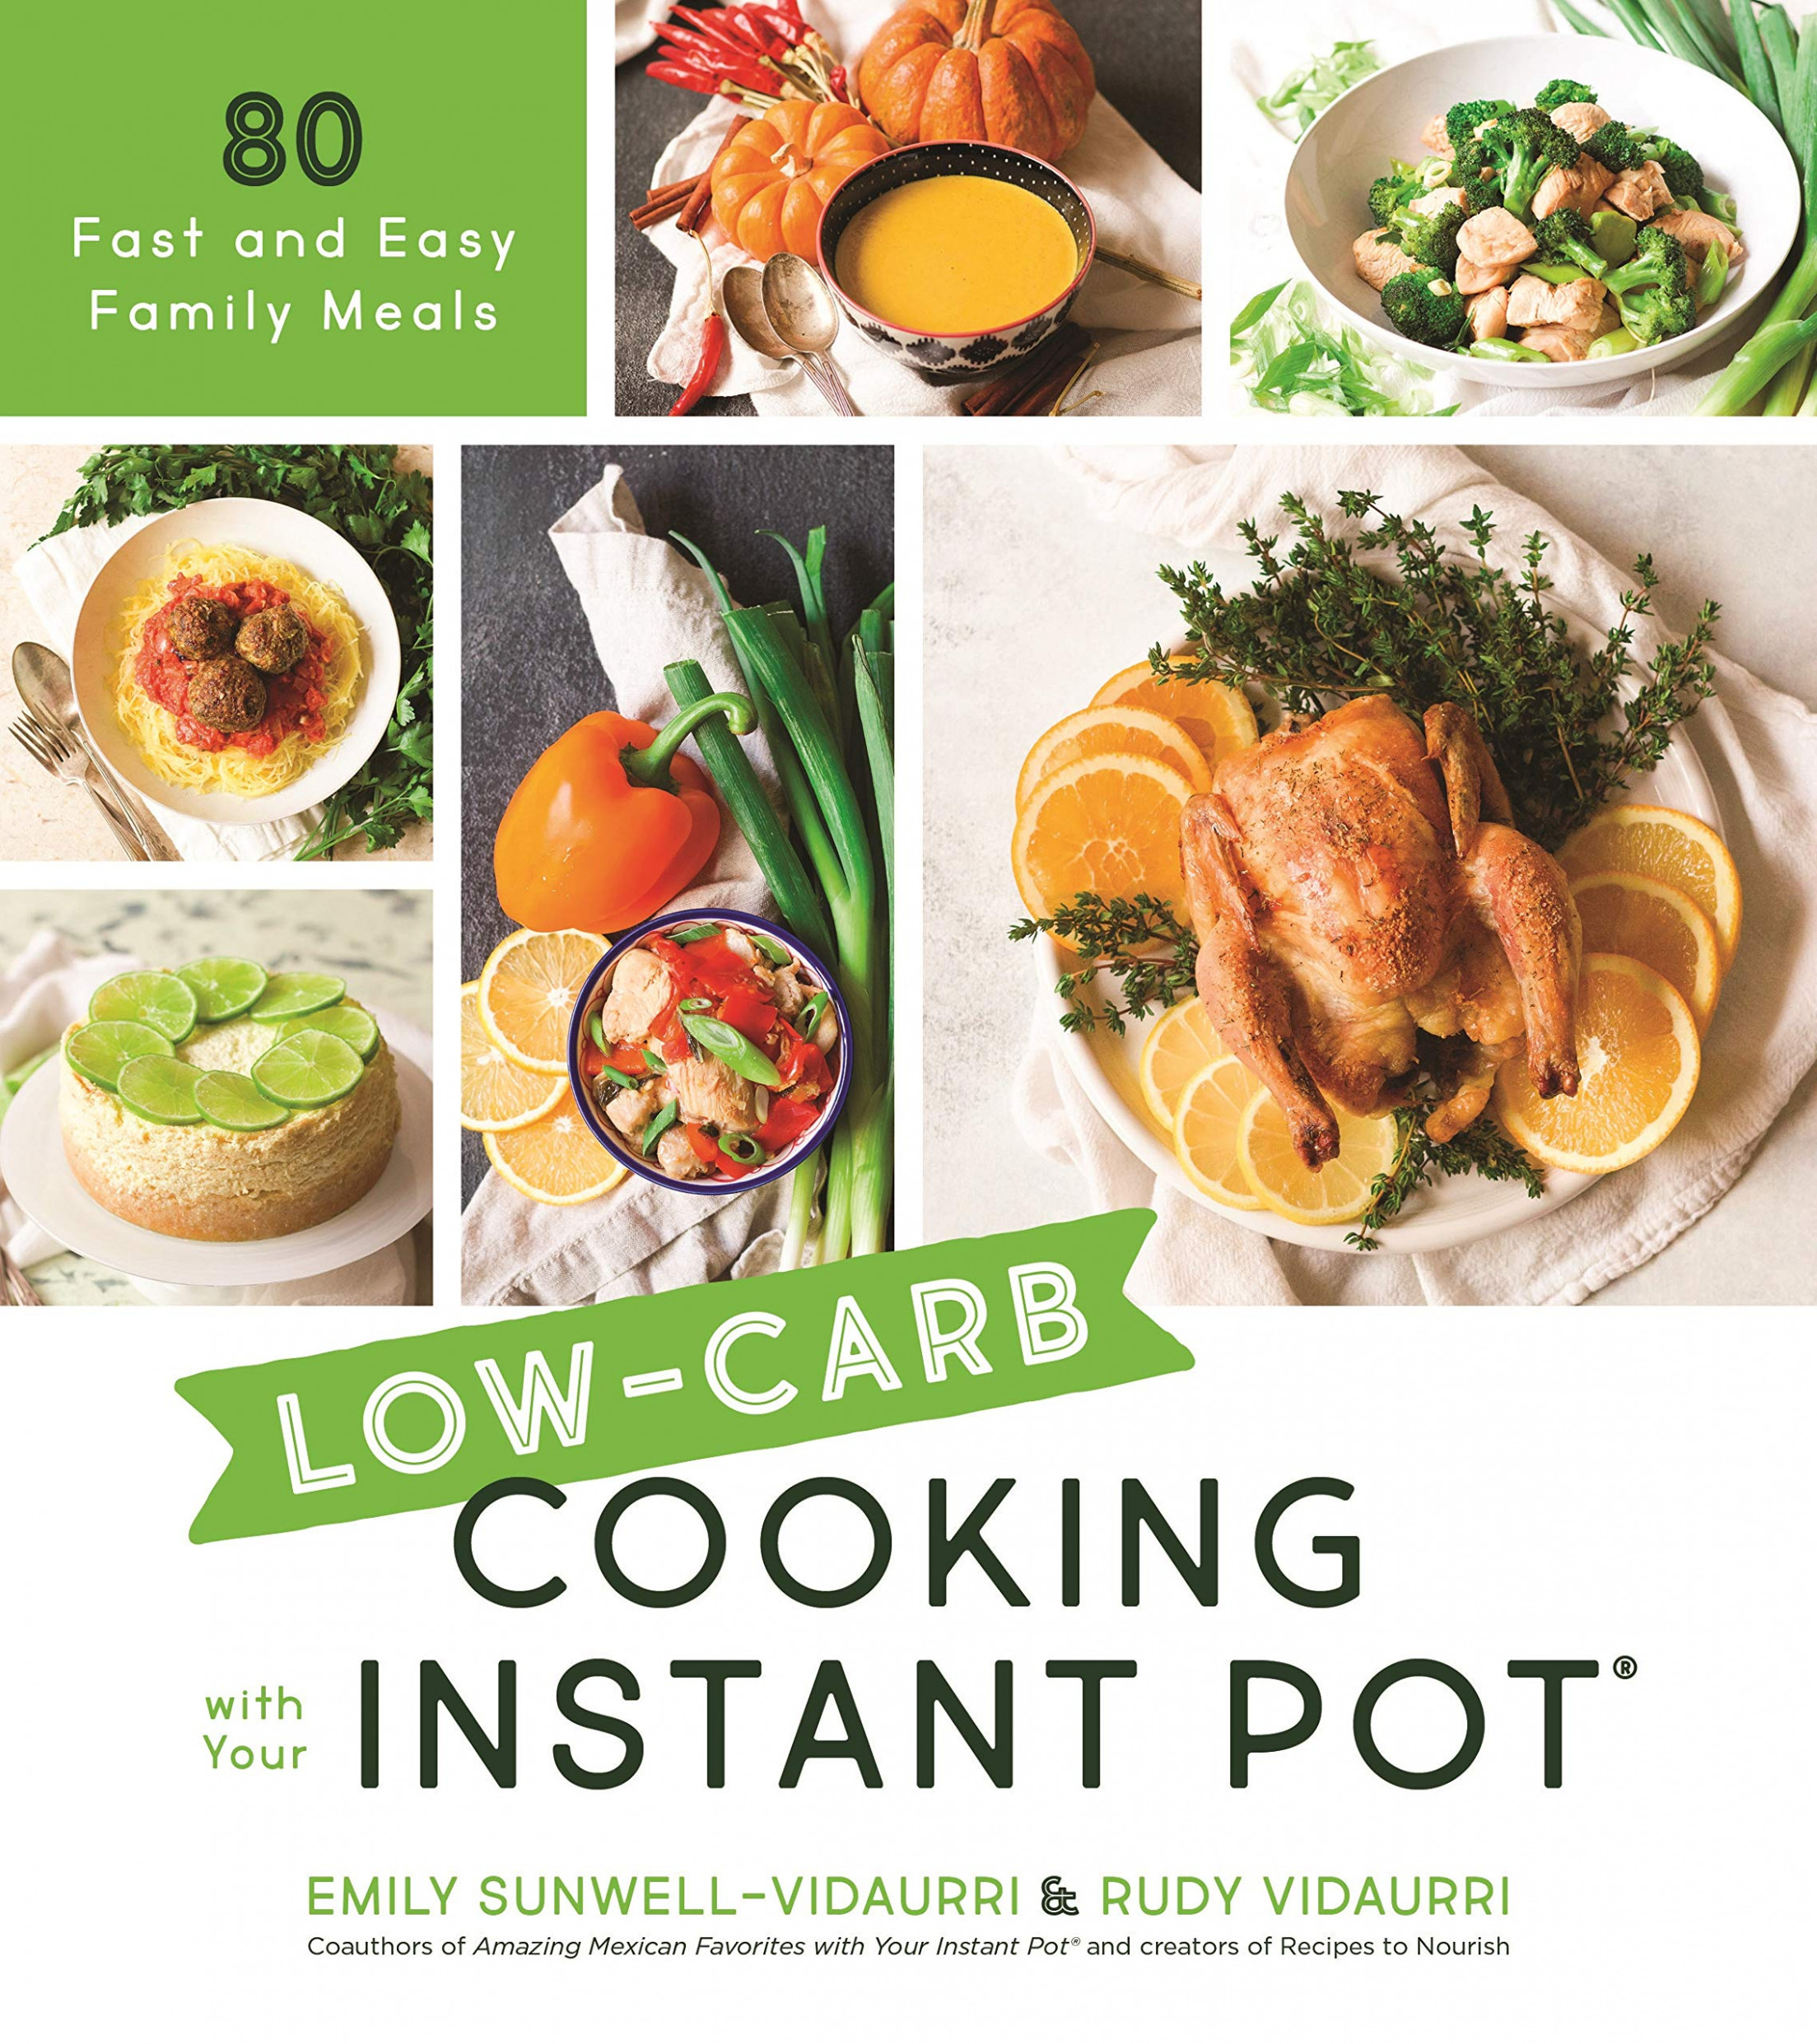 Low-Carb Cooking with Your Instant Pot: 12 Fast and Easy ..